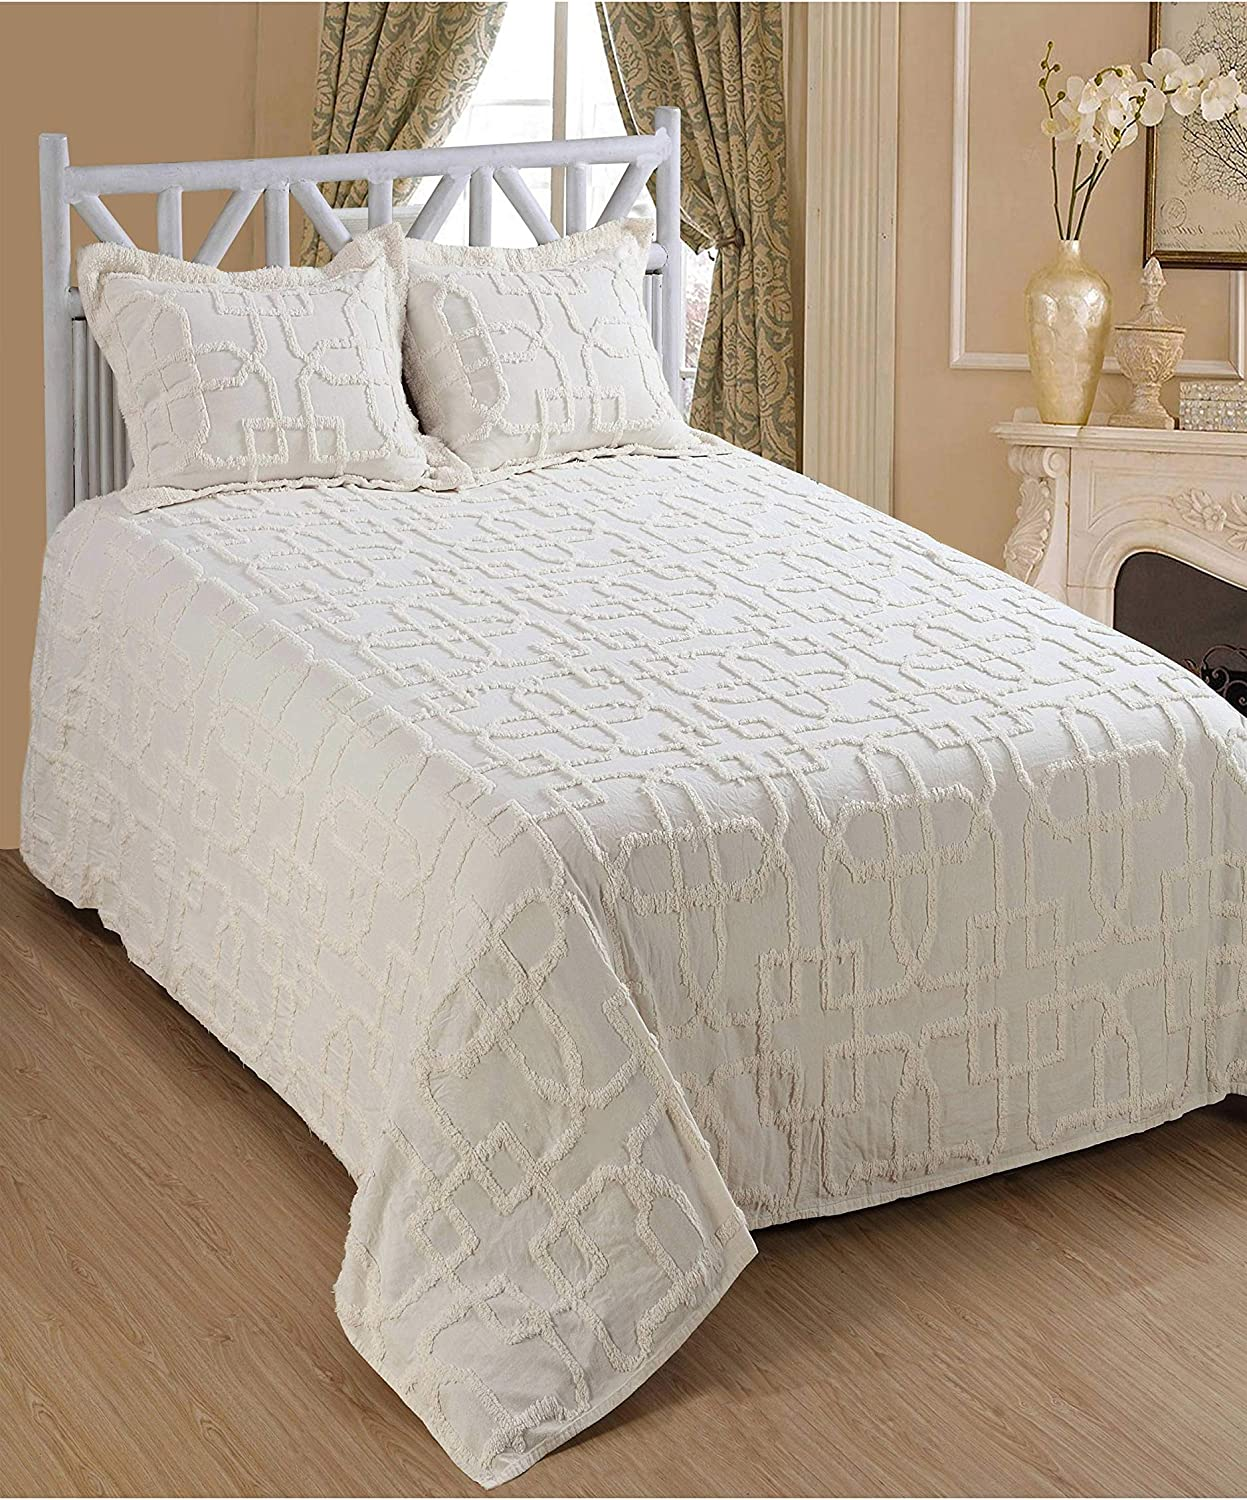 Saral Home Fashions Luxury 3pc Bohemian Bedspread Set 100/% Cotton Chenille Large Medallion Coverlet Fringe Border Fluffy Chic Cozy Quilt Set Matching Standard Sham Abstract Embroider Beige Twin